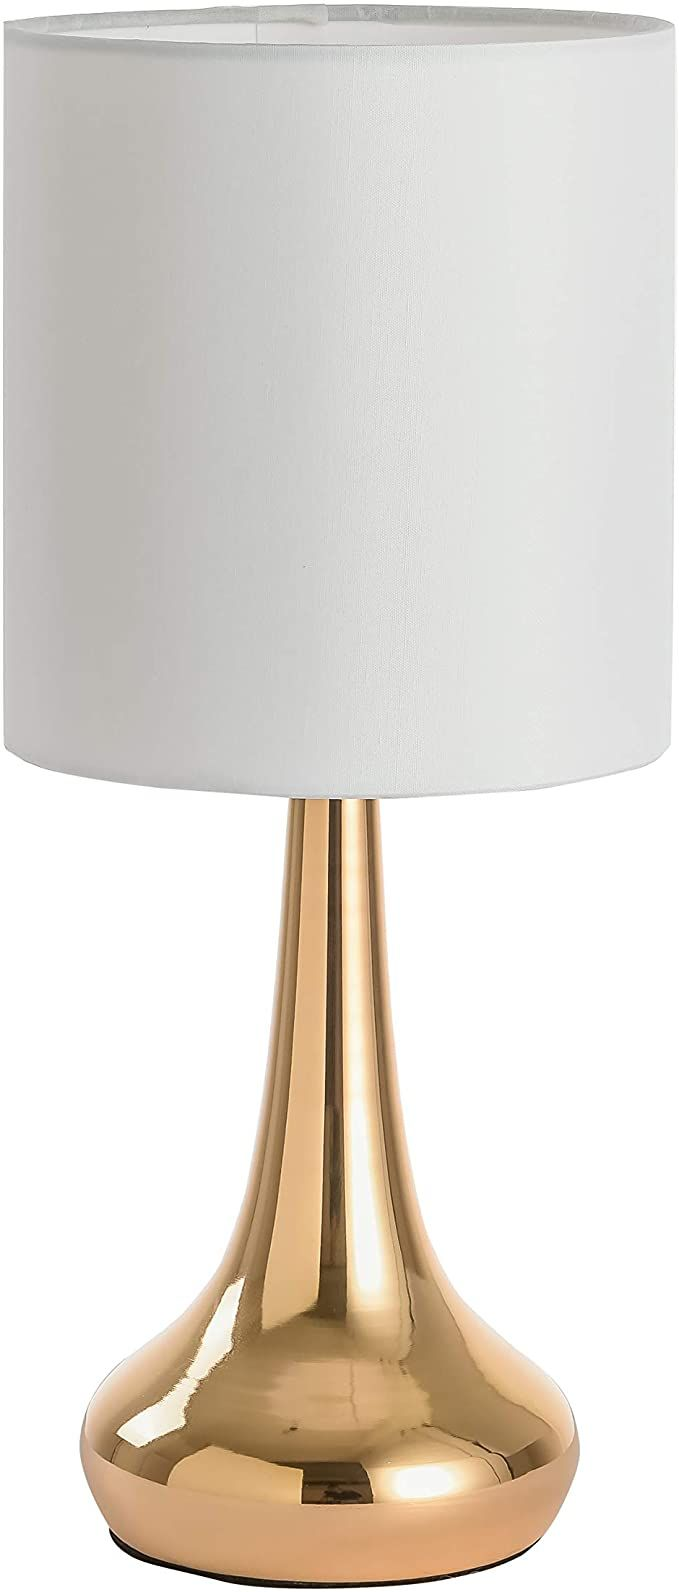 Ferwvew Modern Small Gold Nightstand Lamps Bedside End Table Lamp Accent Desk Lamp With White Shade Metal Base Night Lighting Nightstand Lamp Table Lamp Lamp